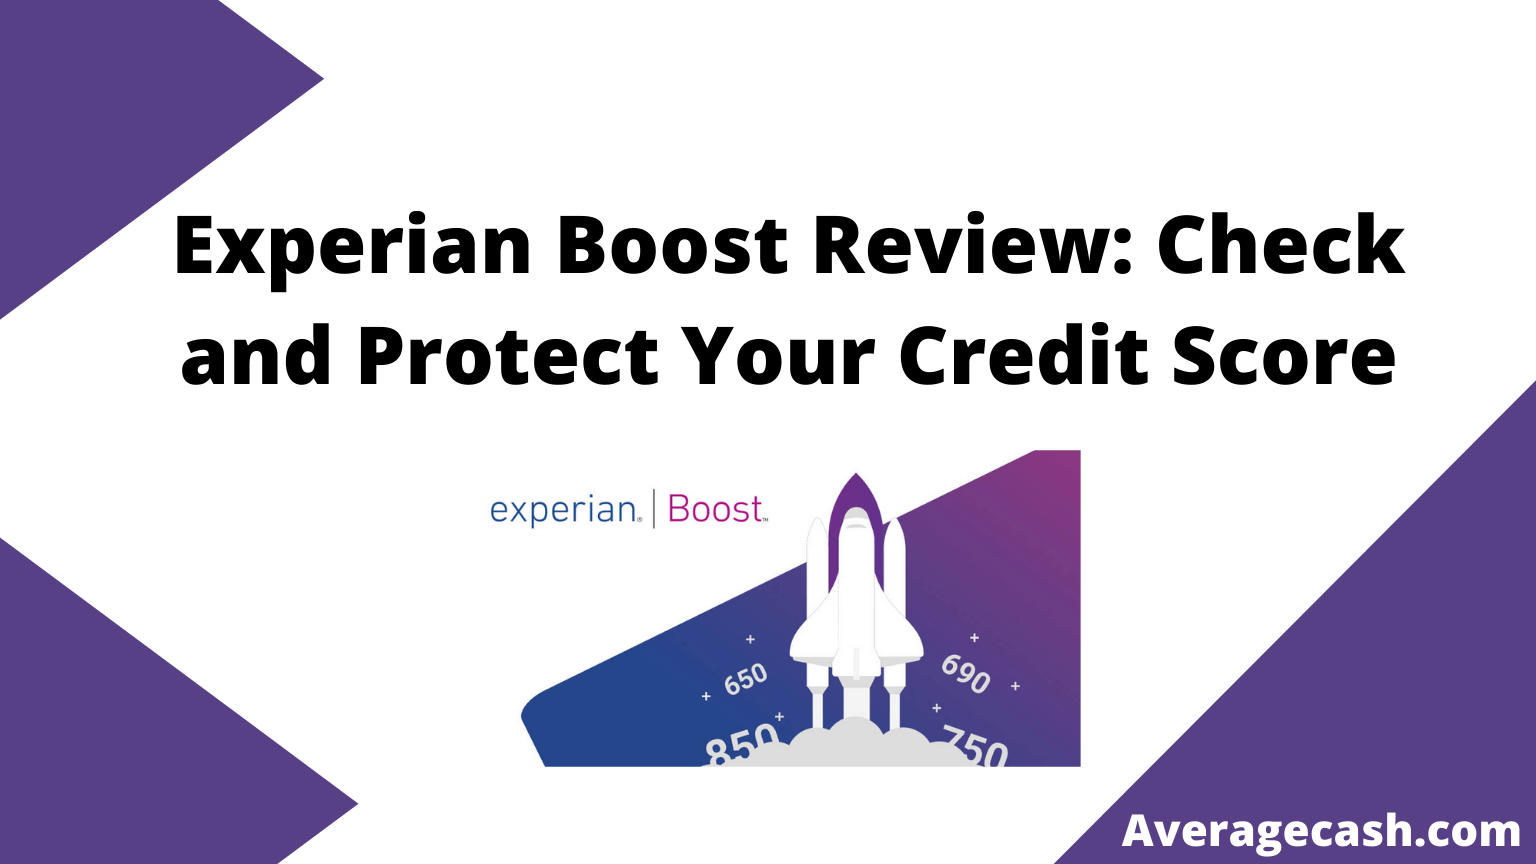 Experian Boost Review Check and Protect Your Credit Score, September 2021